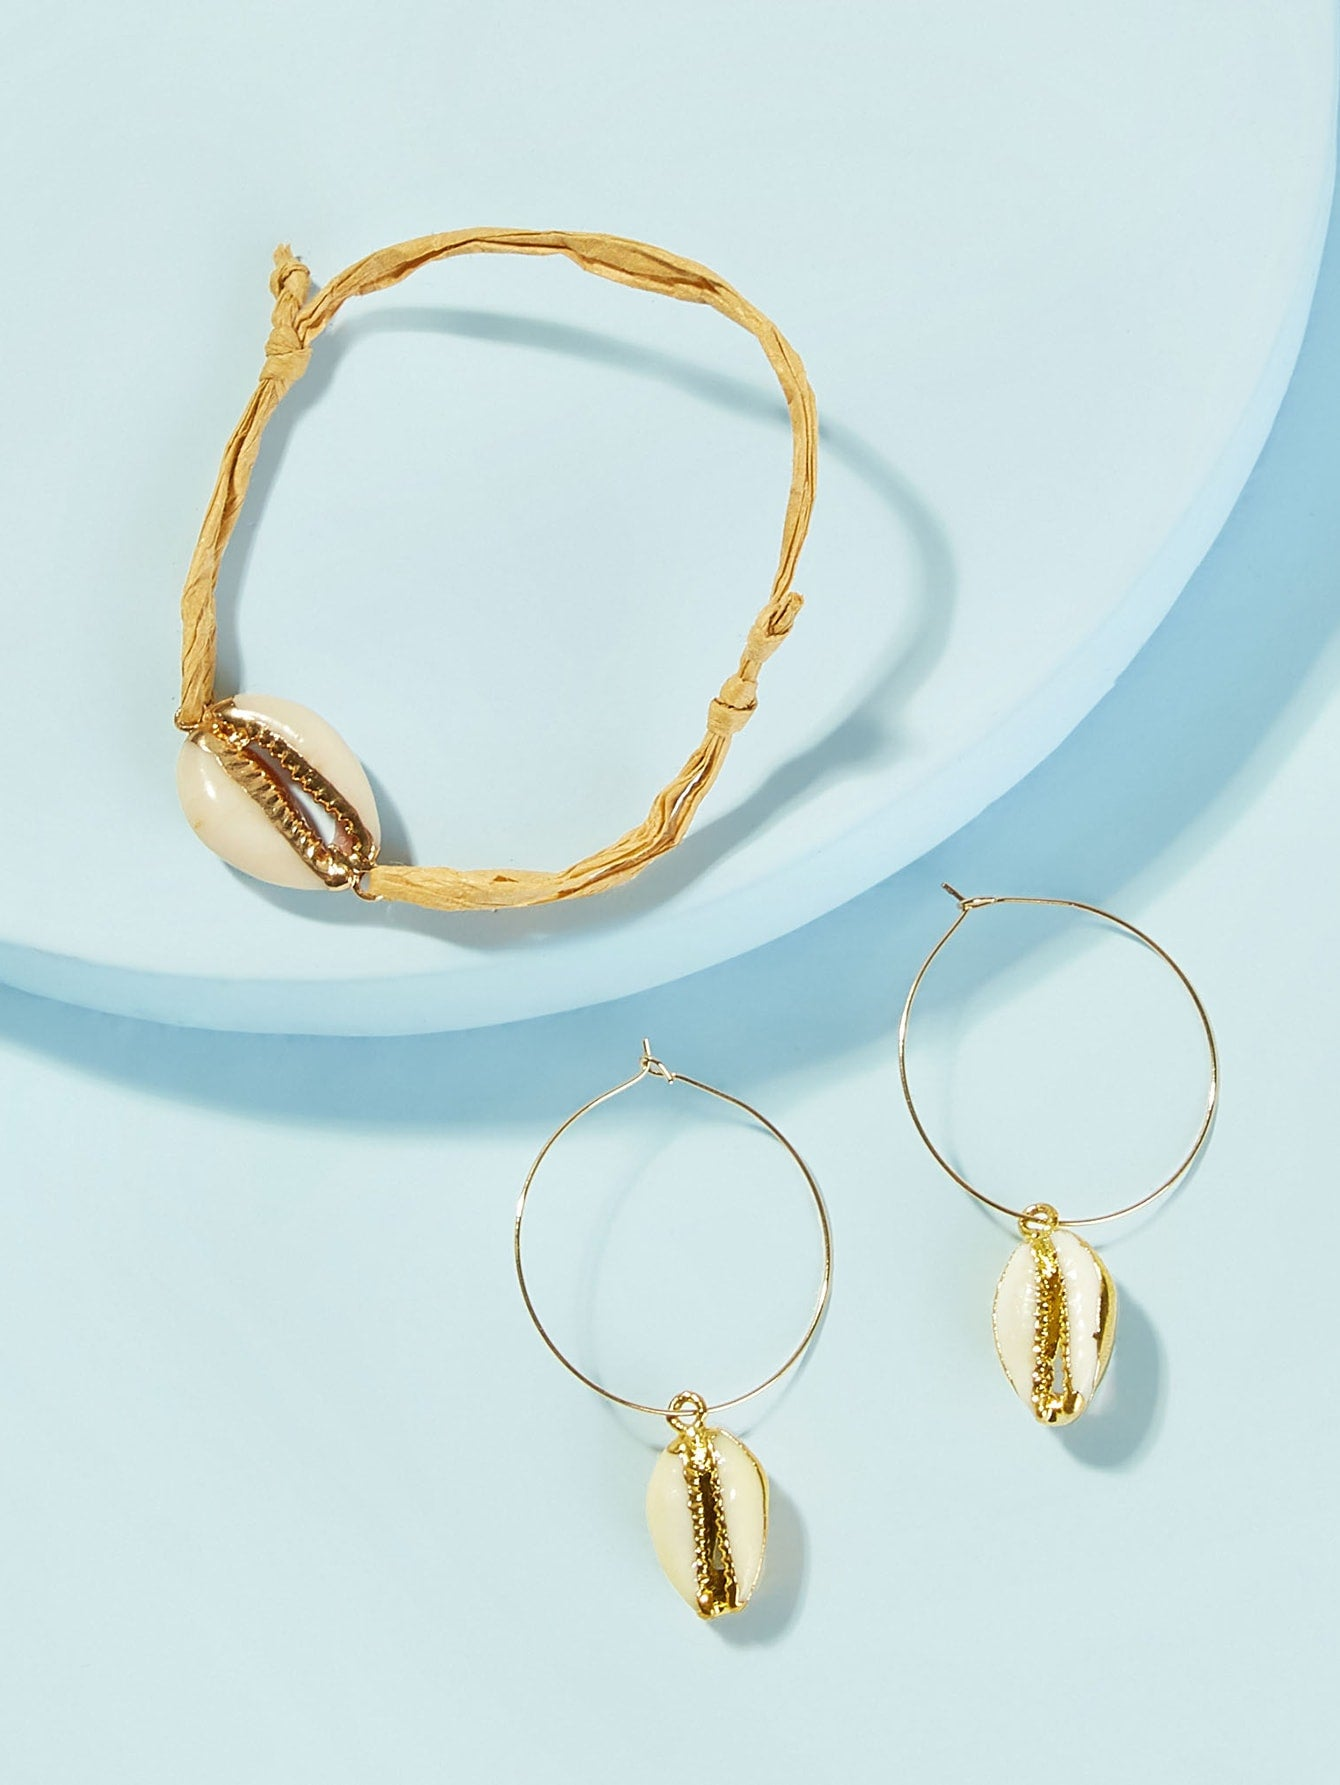 Golden 3pcs Shell Decor Metal Bracelet & Hoop Drop Earring